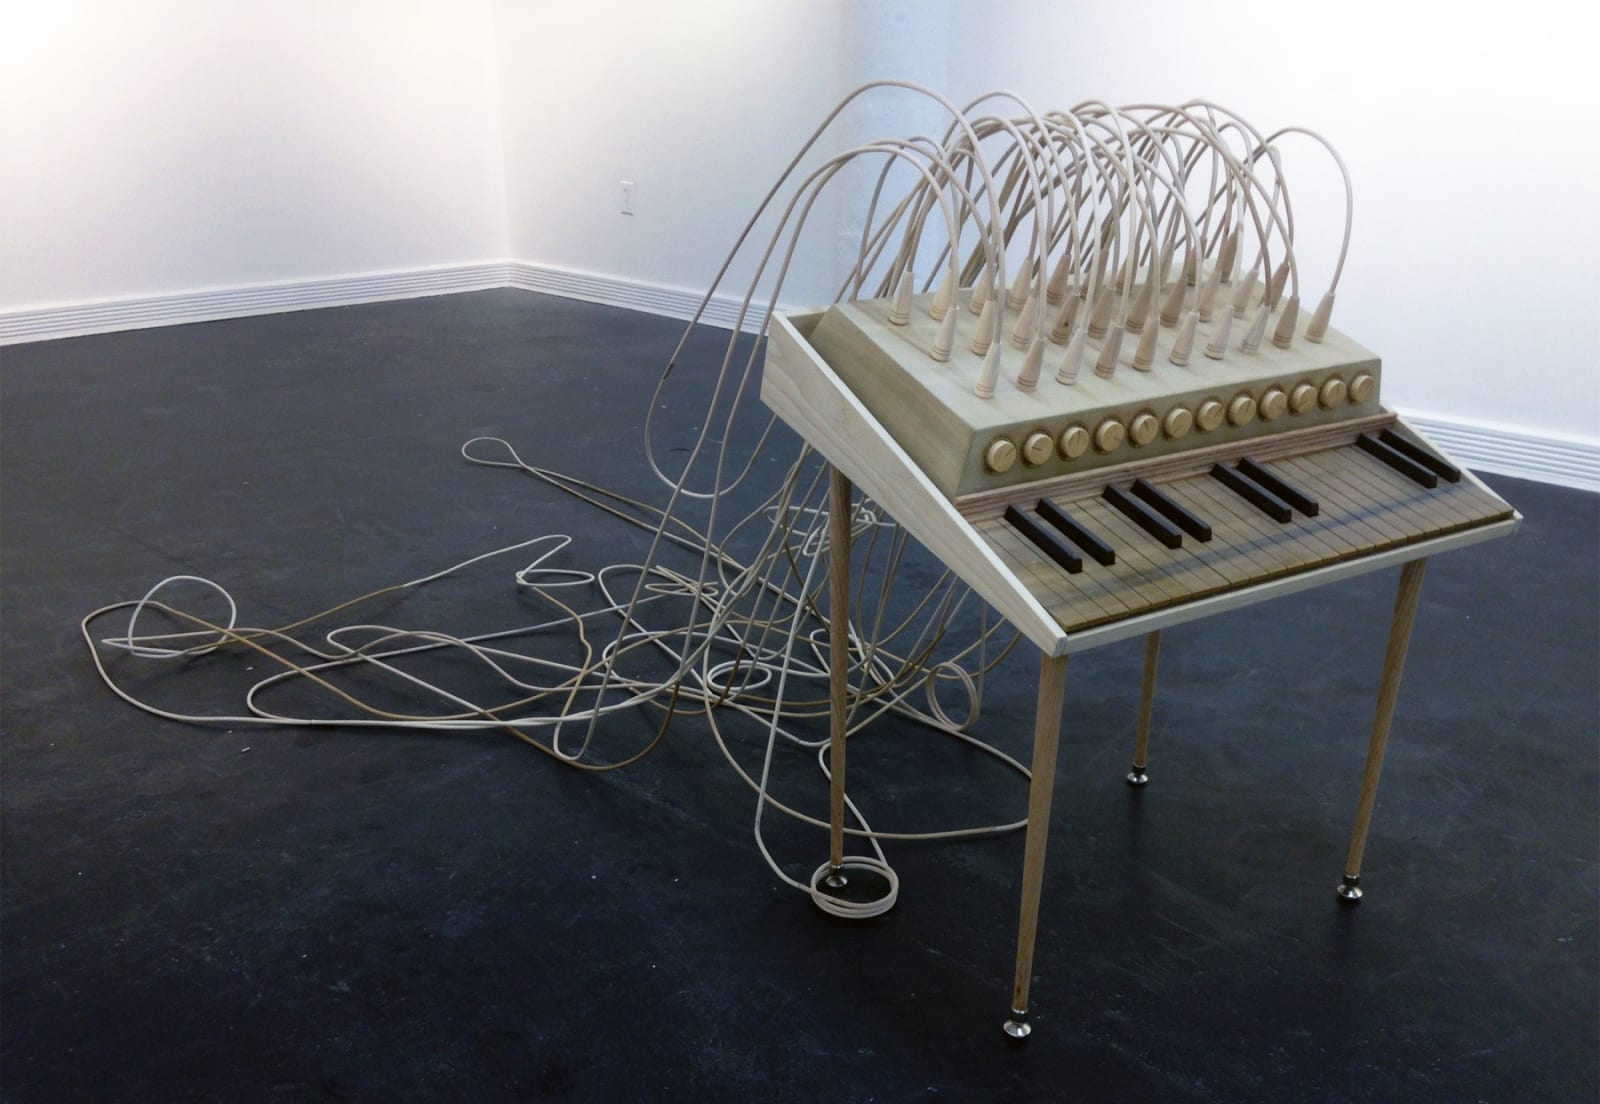 Craig Kaths' intricate synth sculptures look real enough to play